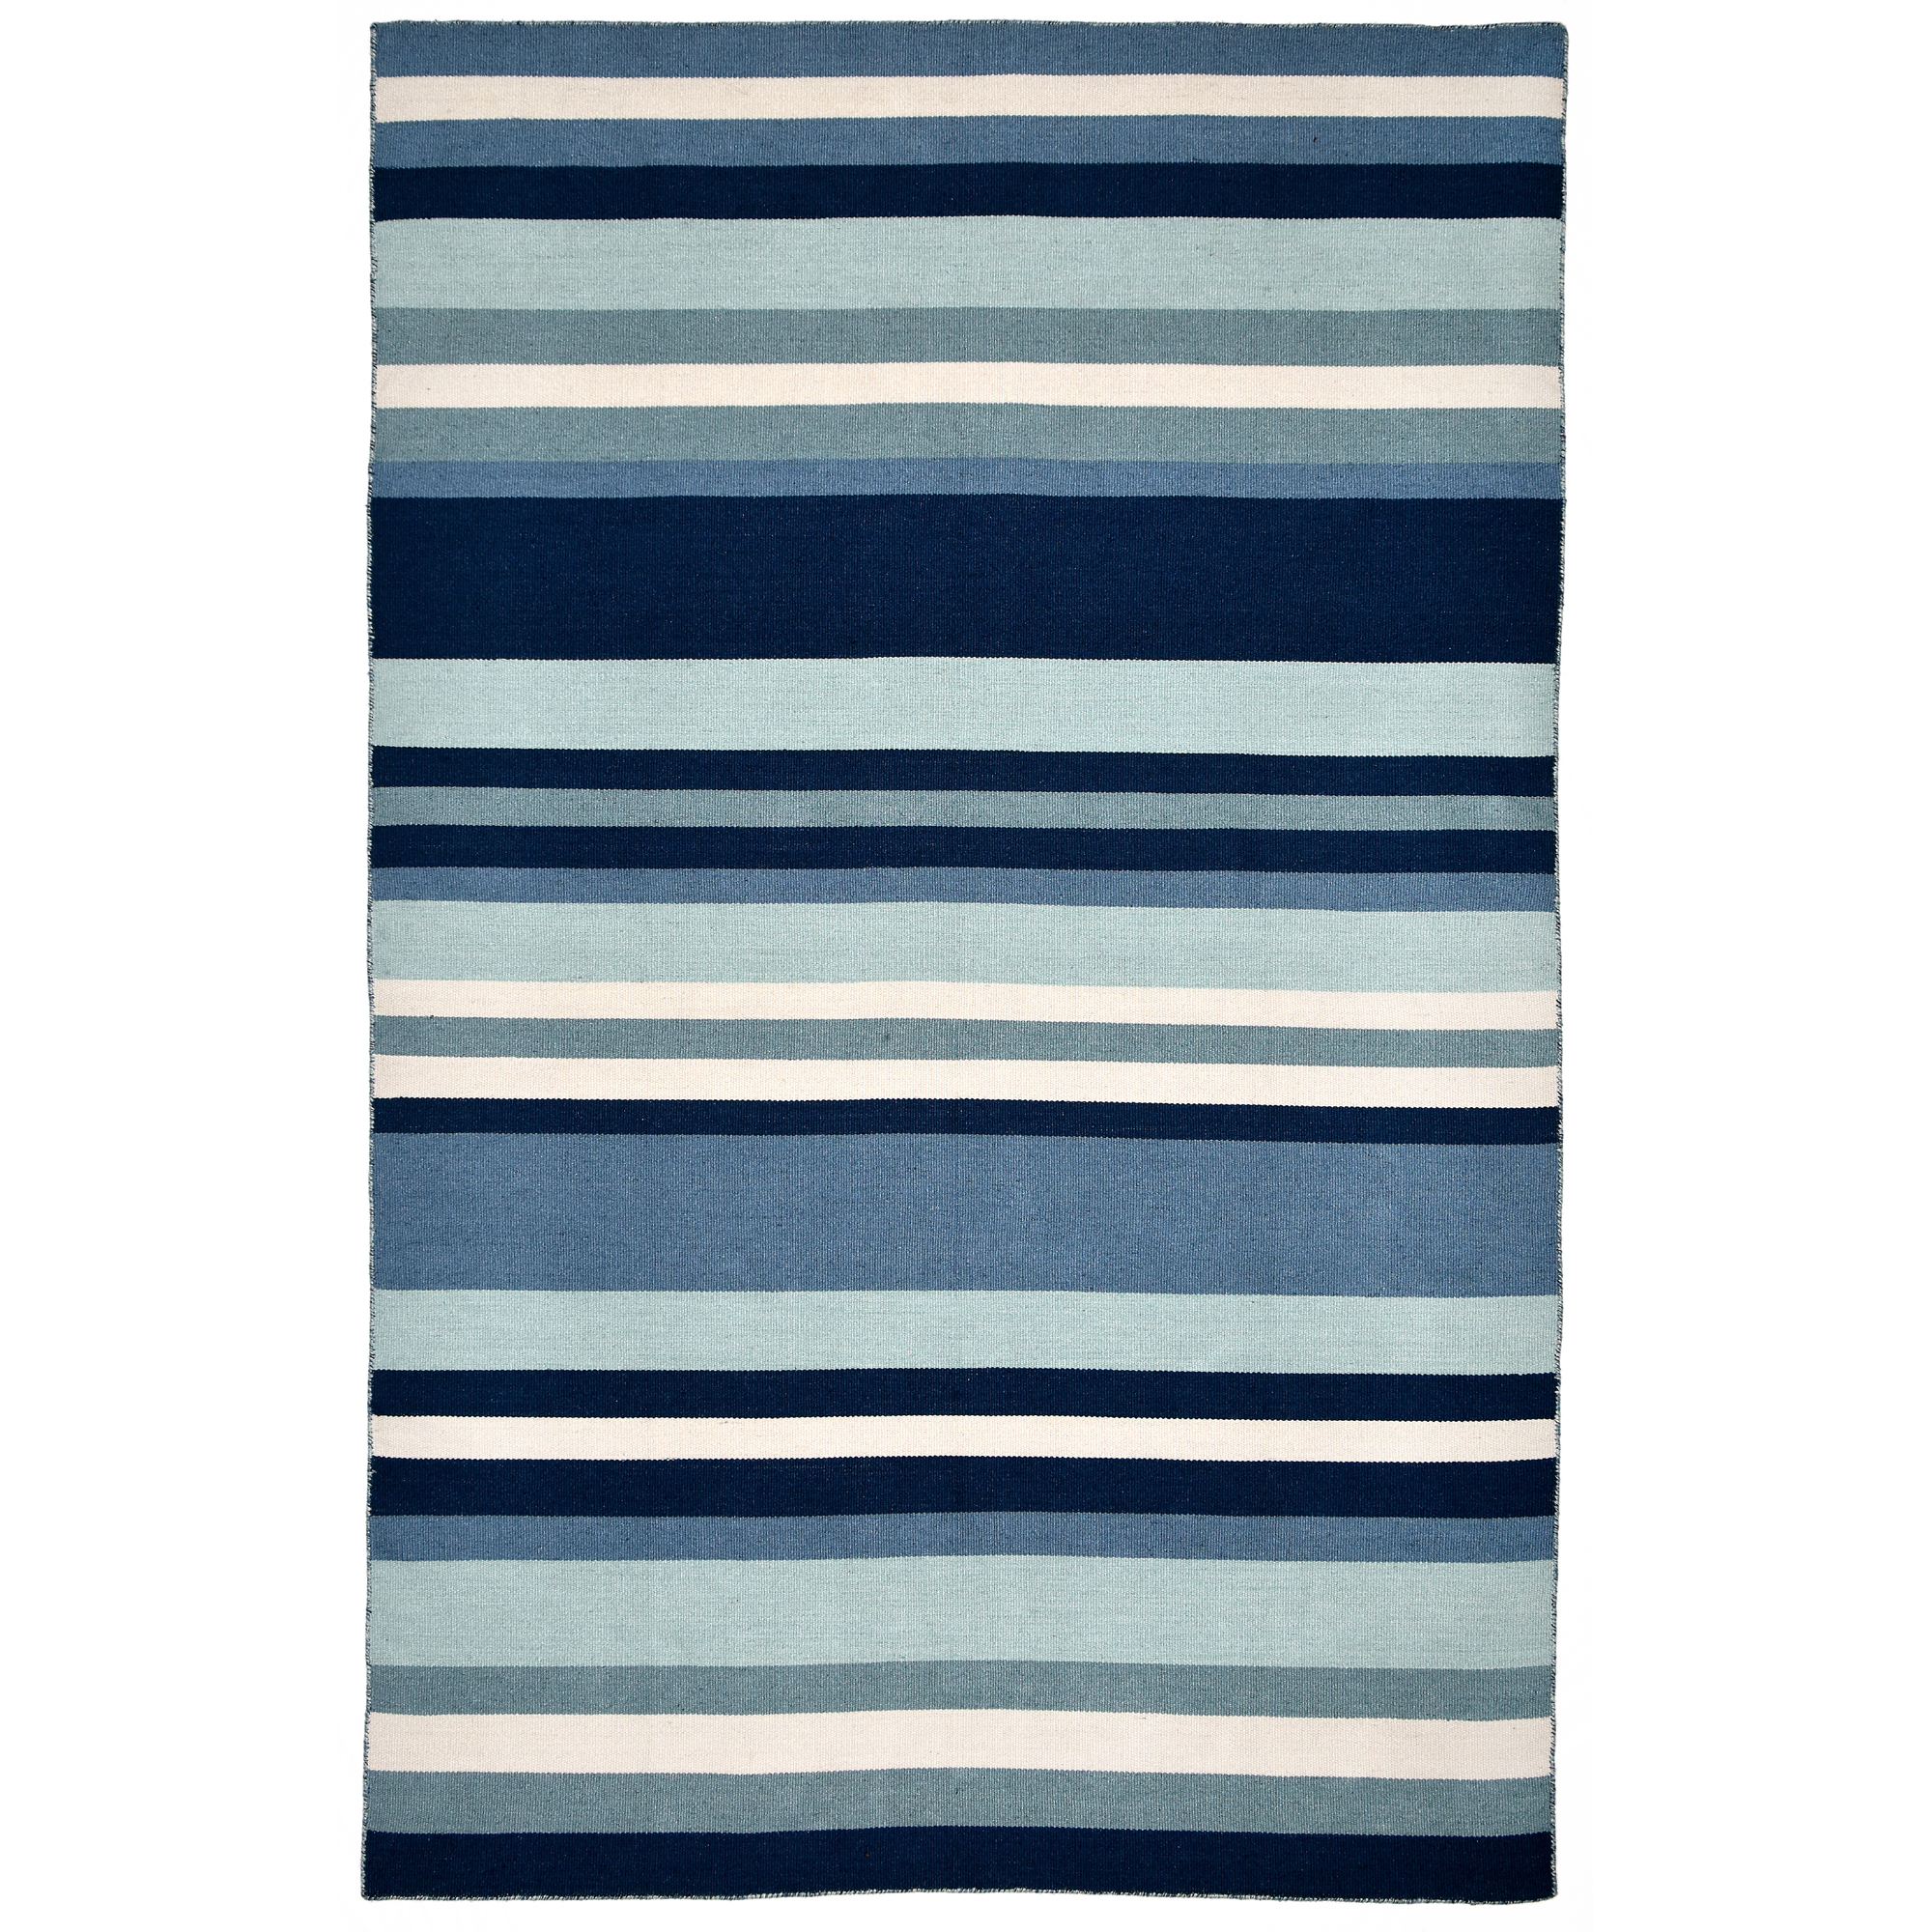 of inspirations fascinating size pope rugs fire in with natural north sandstorm beach pretty rectangle costco astonishing pictures design benedict and full mustard letter sale beautiful myrtle area rug for brown ideas grey picture online